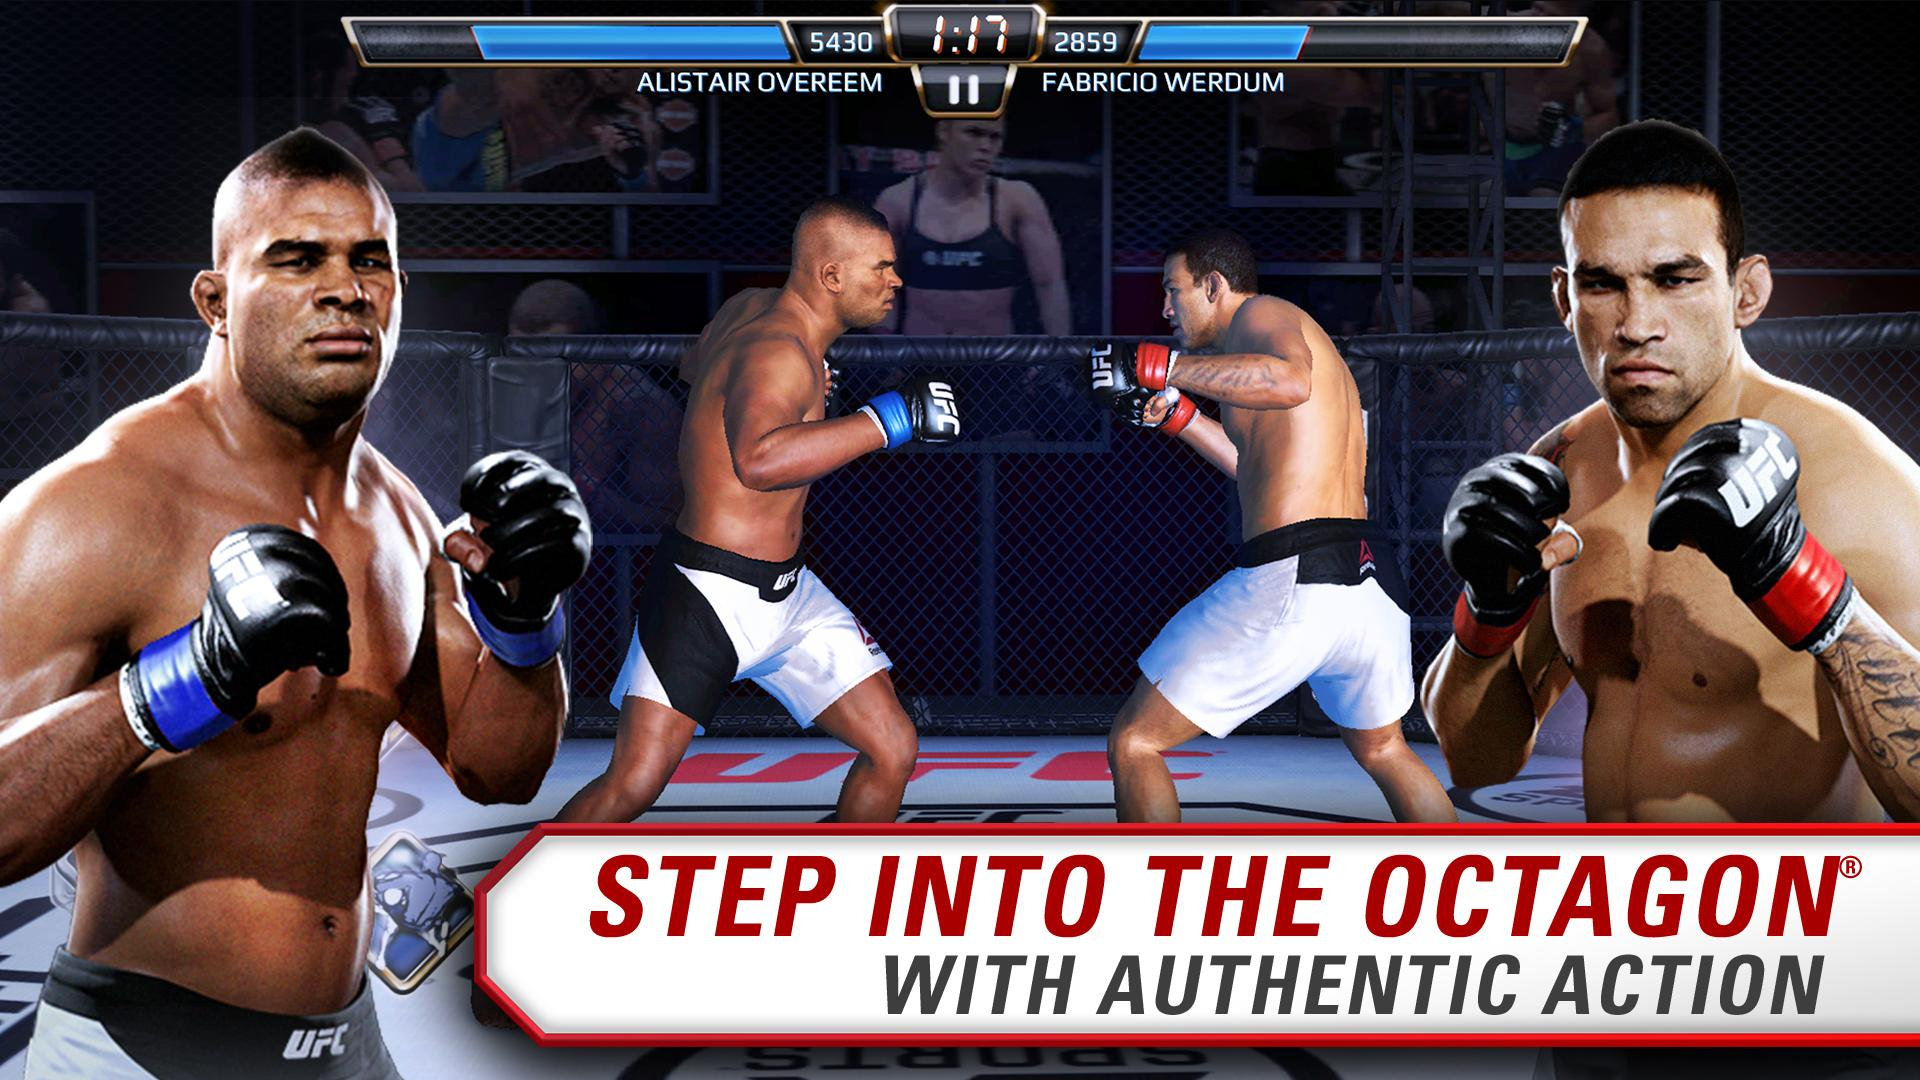 Top 10 Android Sports Games all Sports Lovers Should Try